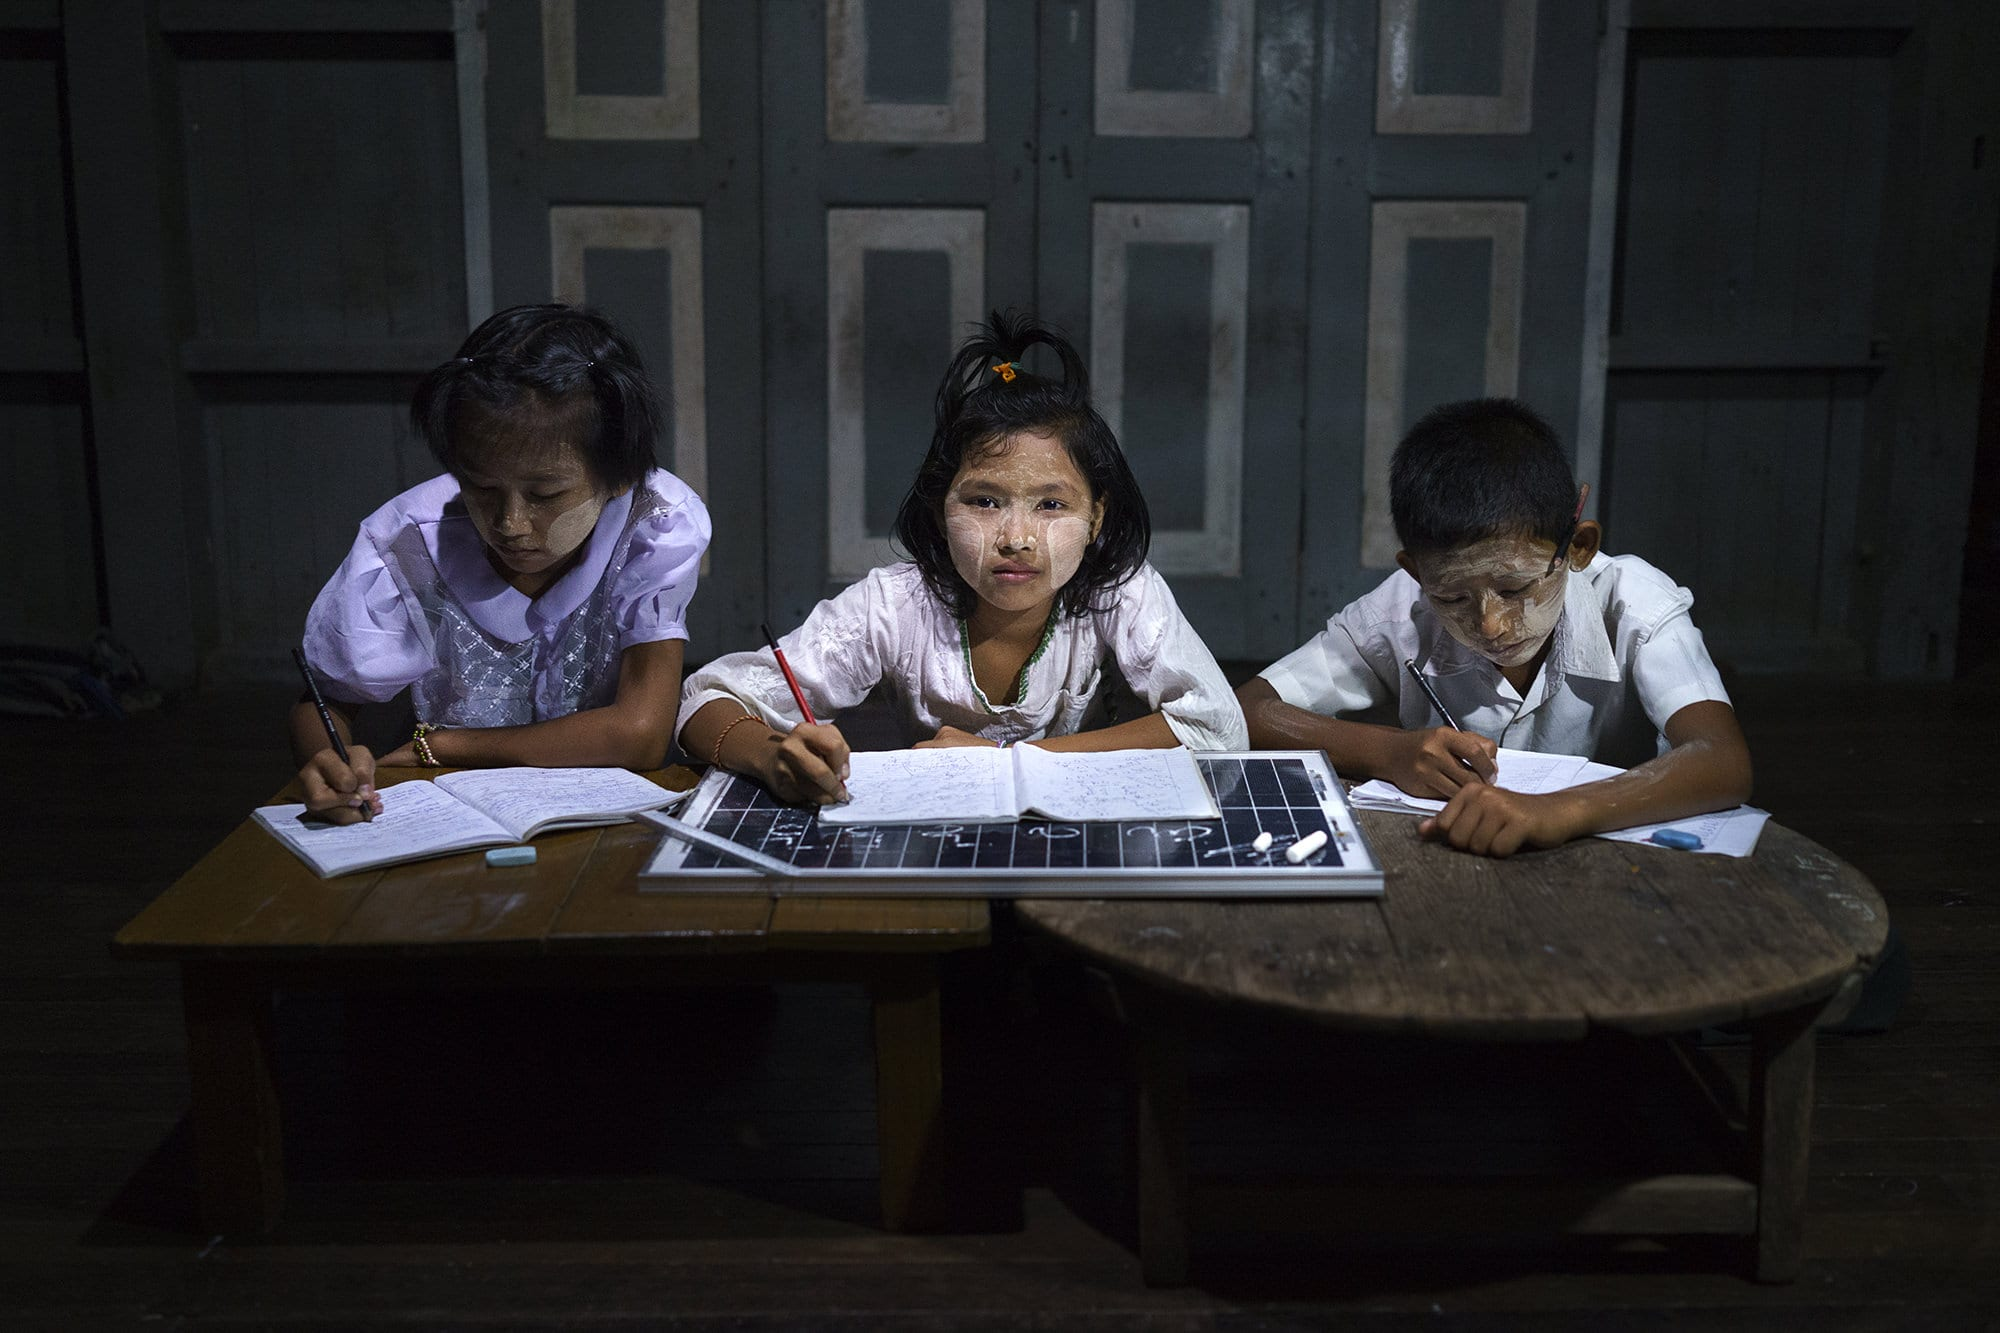 Grade 11 students do their homework in a solar-powered after-school community centre.